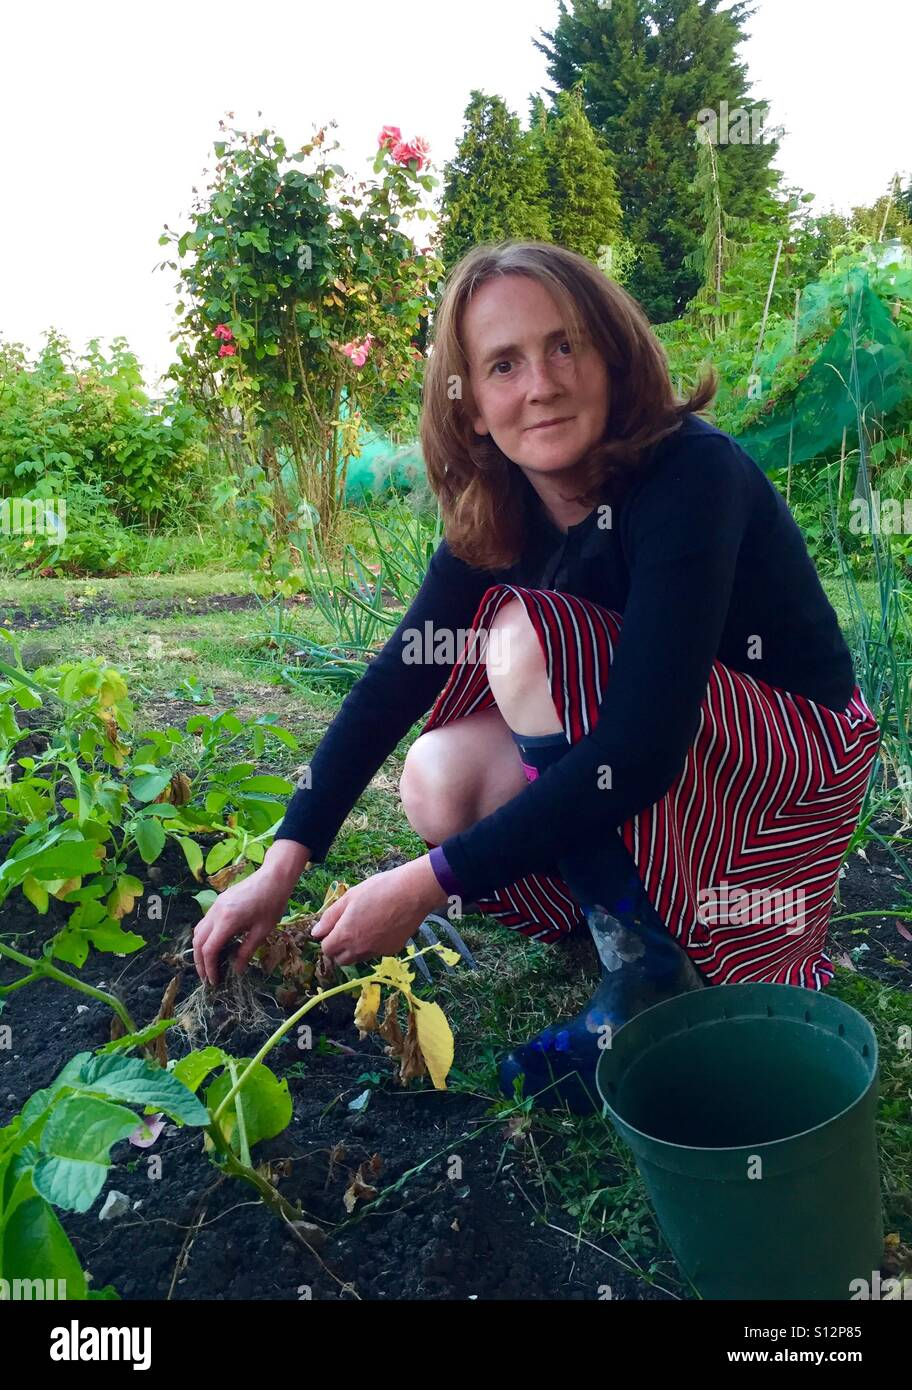 Red haired 40 year old woman gardening in an allotment - Stock Image